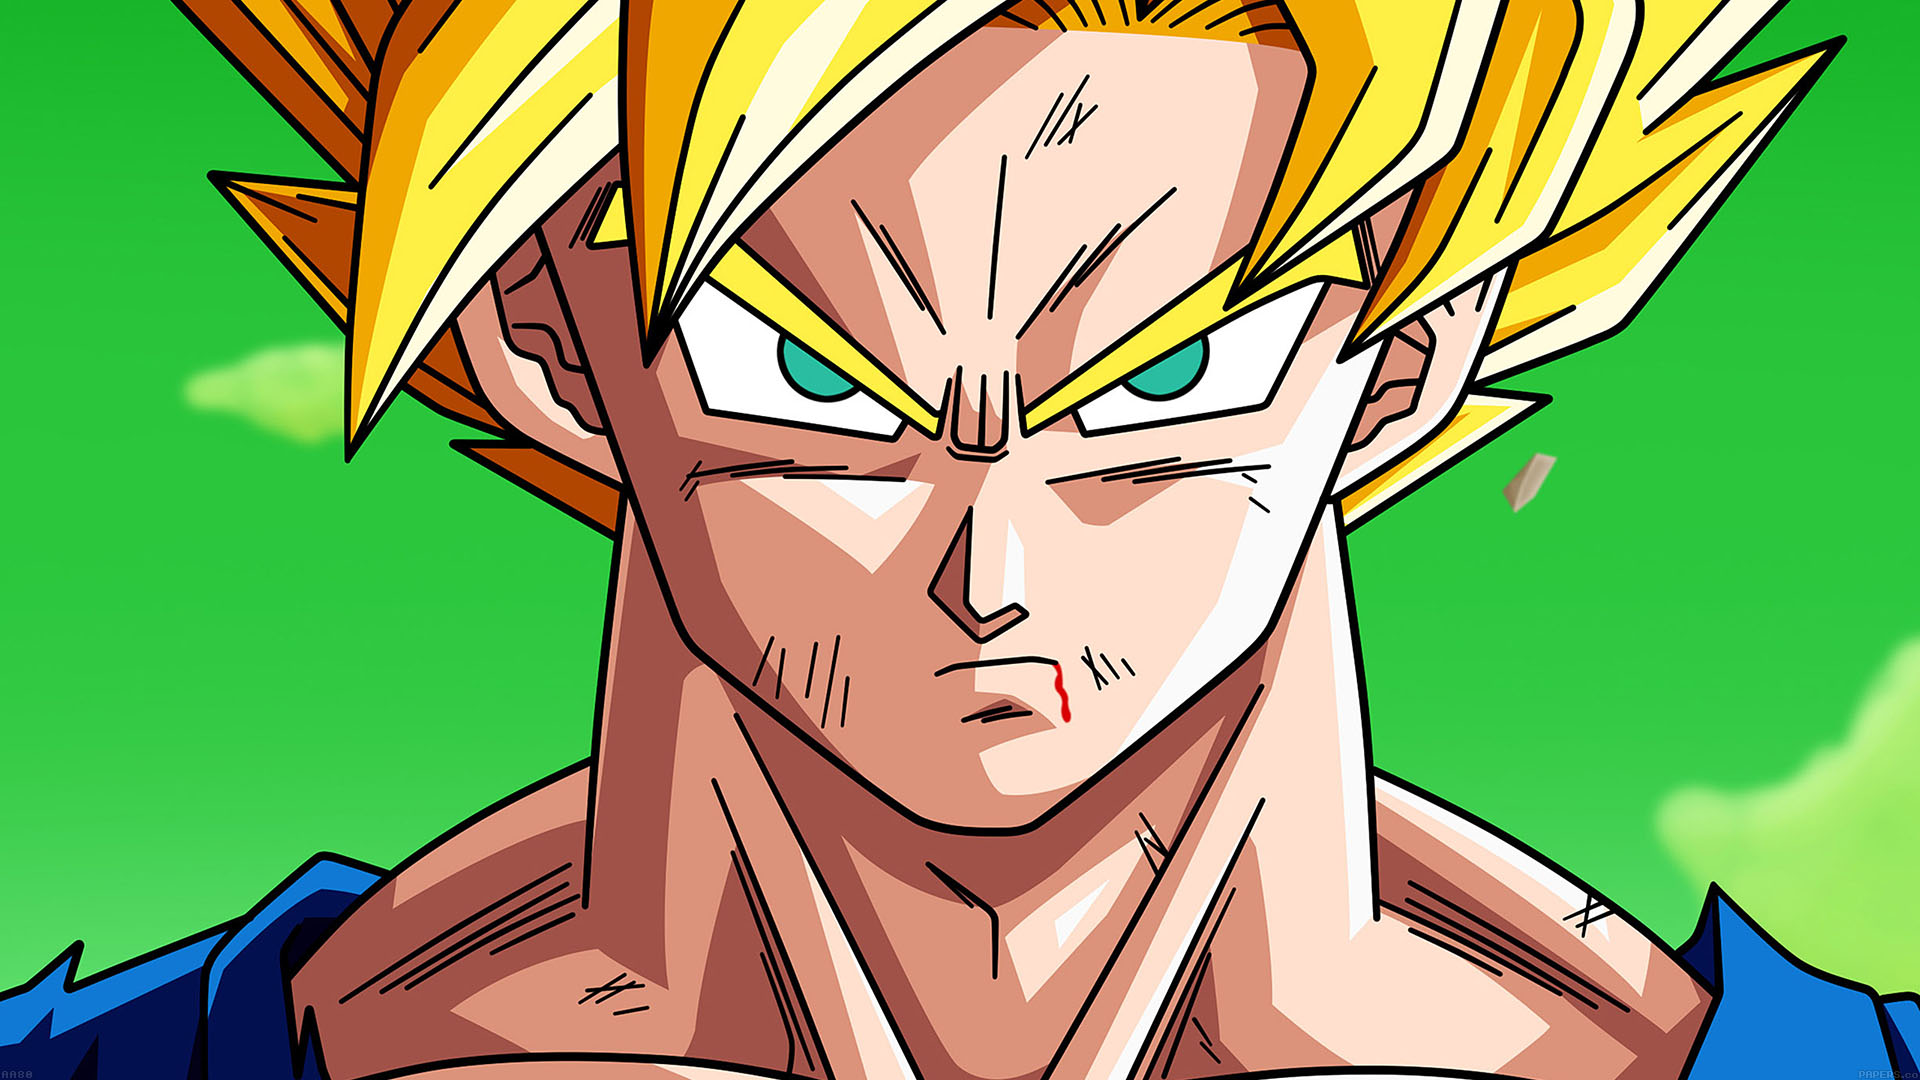 Fall Live Wallpaper Android Aa80 Wallpaper Dragon Ball Goku By Bejitsu Illust Papers Co